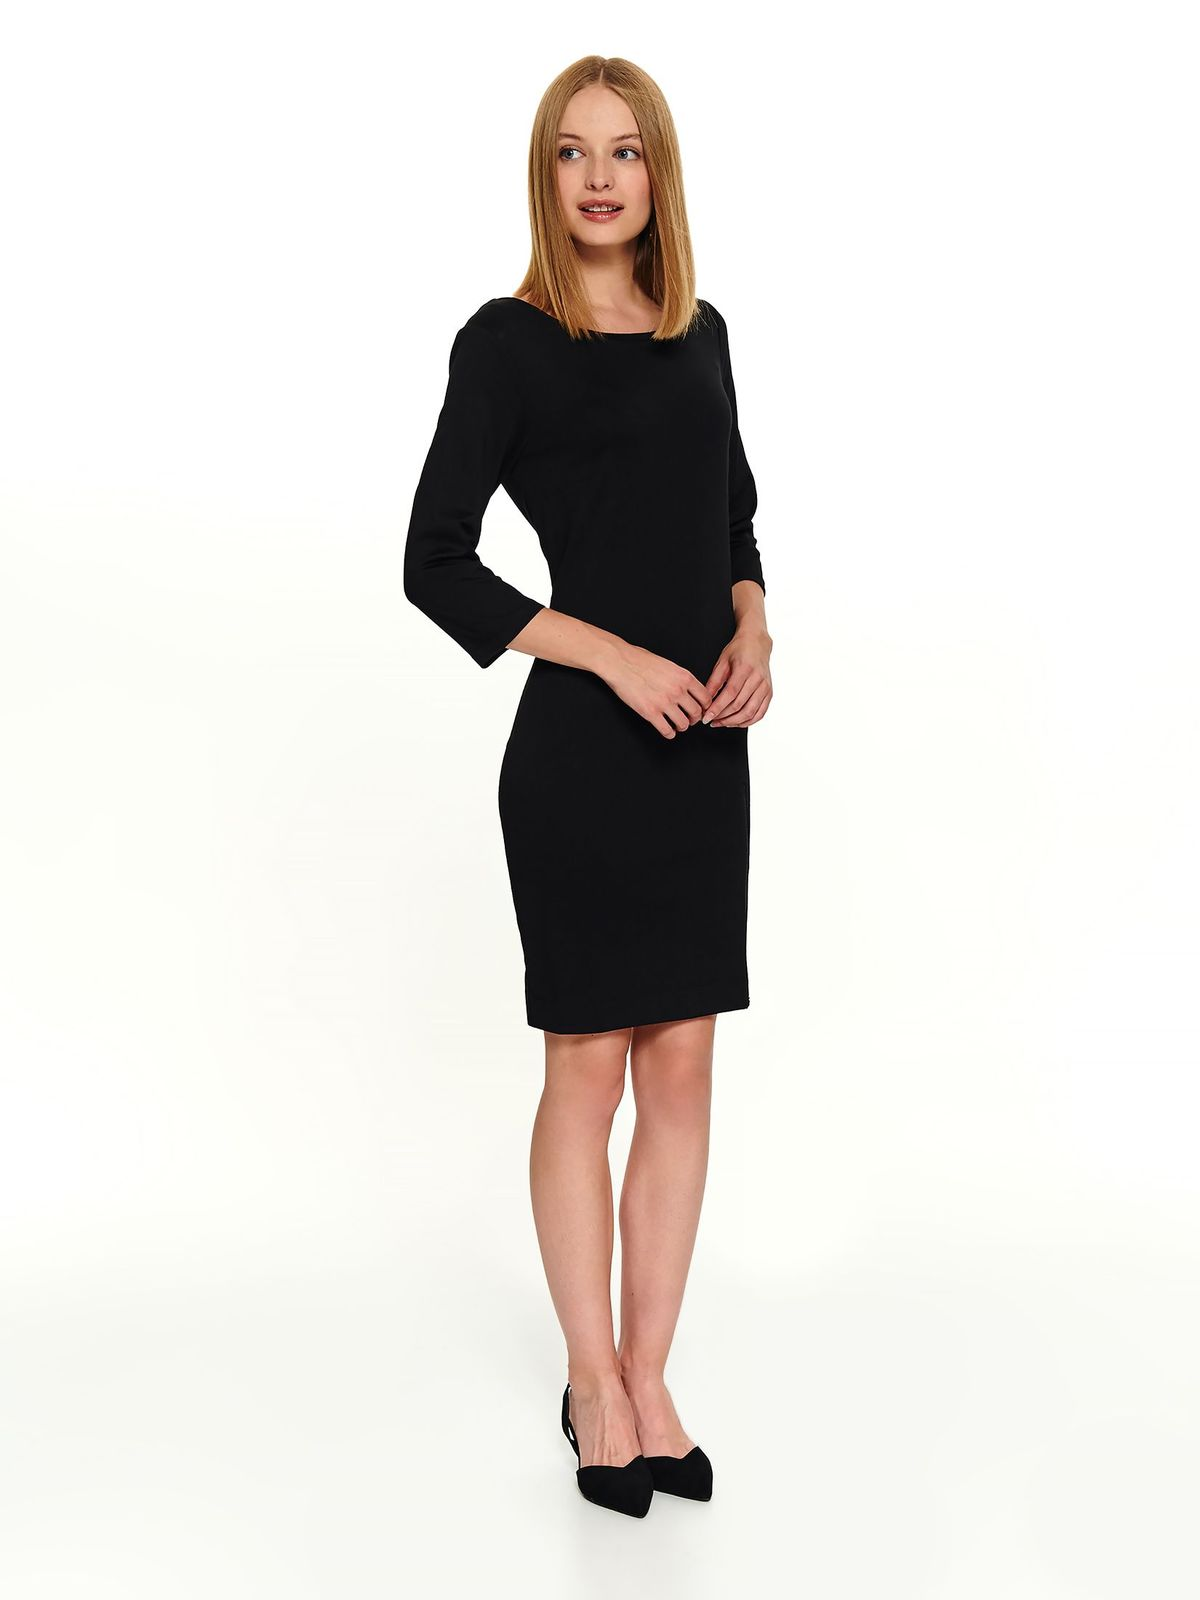 Black dress office short cut with 3/4 sleeves frontal slit back zipper fastening